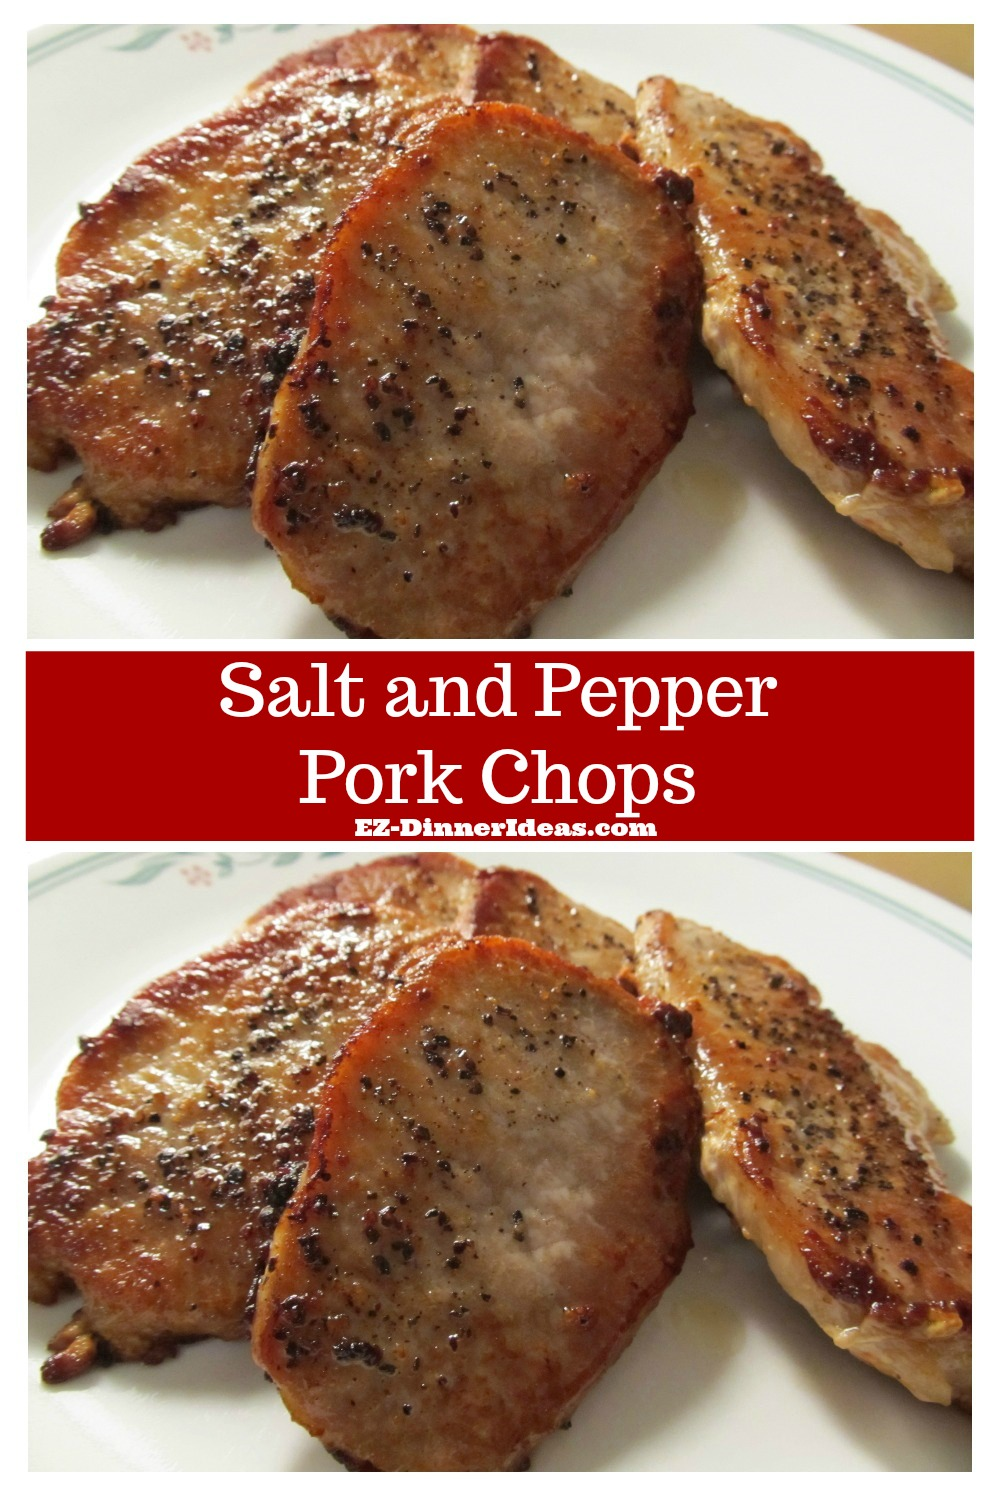 Salt and Pepper Pork Chops - The easiest pork chop recipe you have ever come across.  It is quick and super tasty.  You can pair with many side dishes to make dinner on the table in no time.